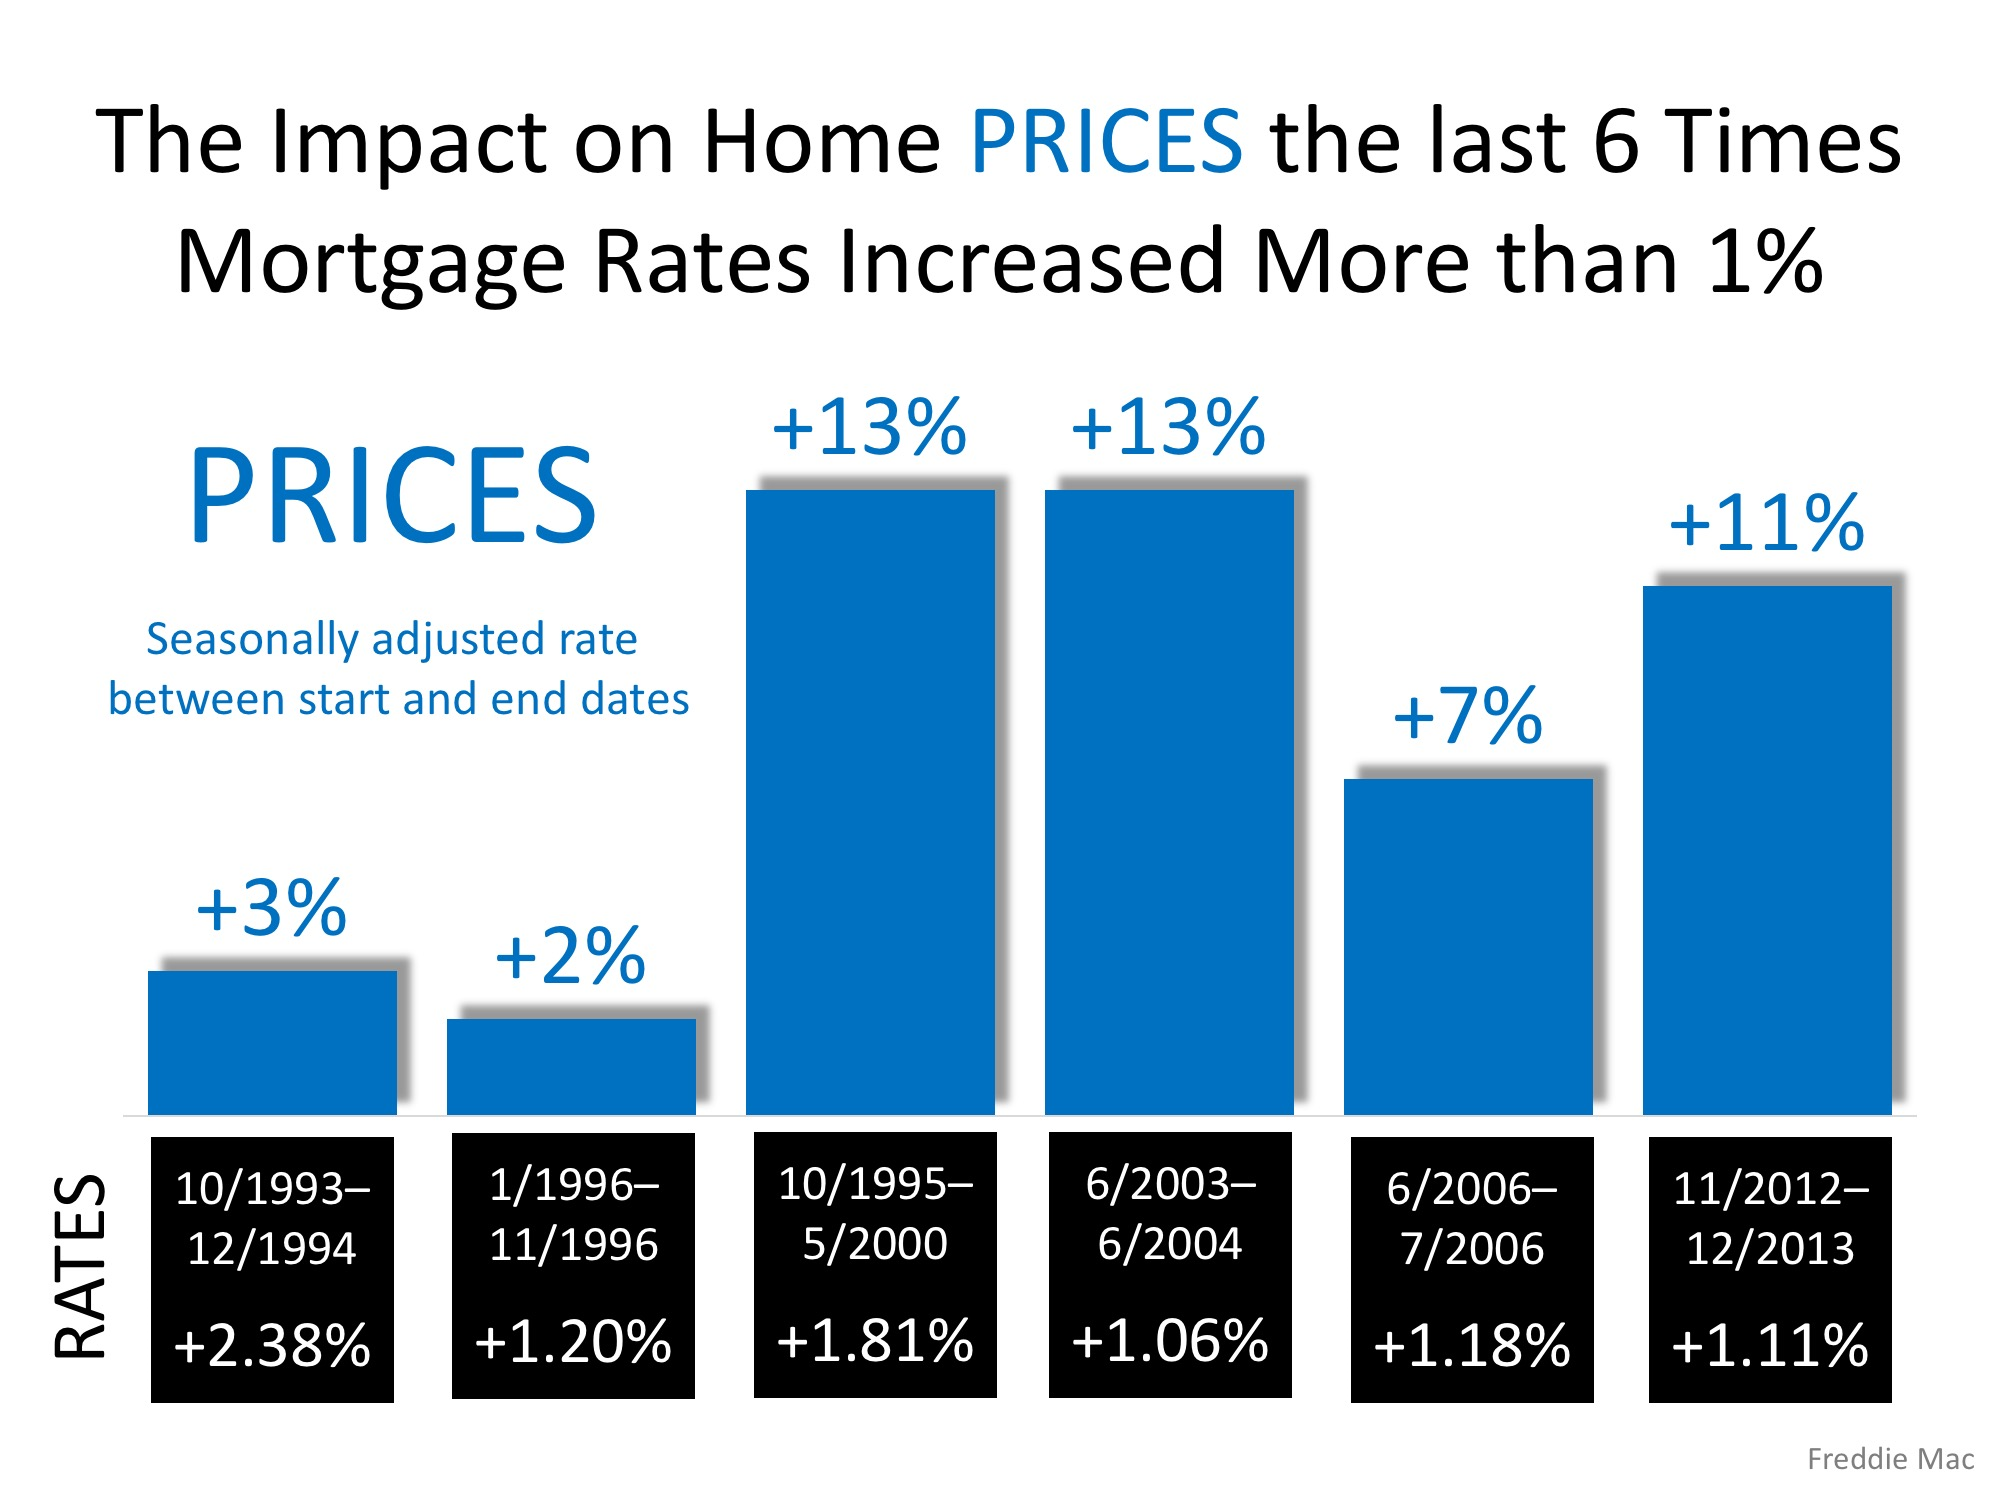 Freddie Mac: Rising Mortgage Rates DO NOT Lead to Falling Home Prices